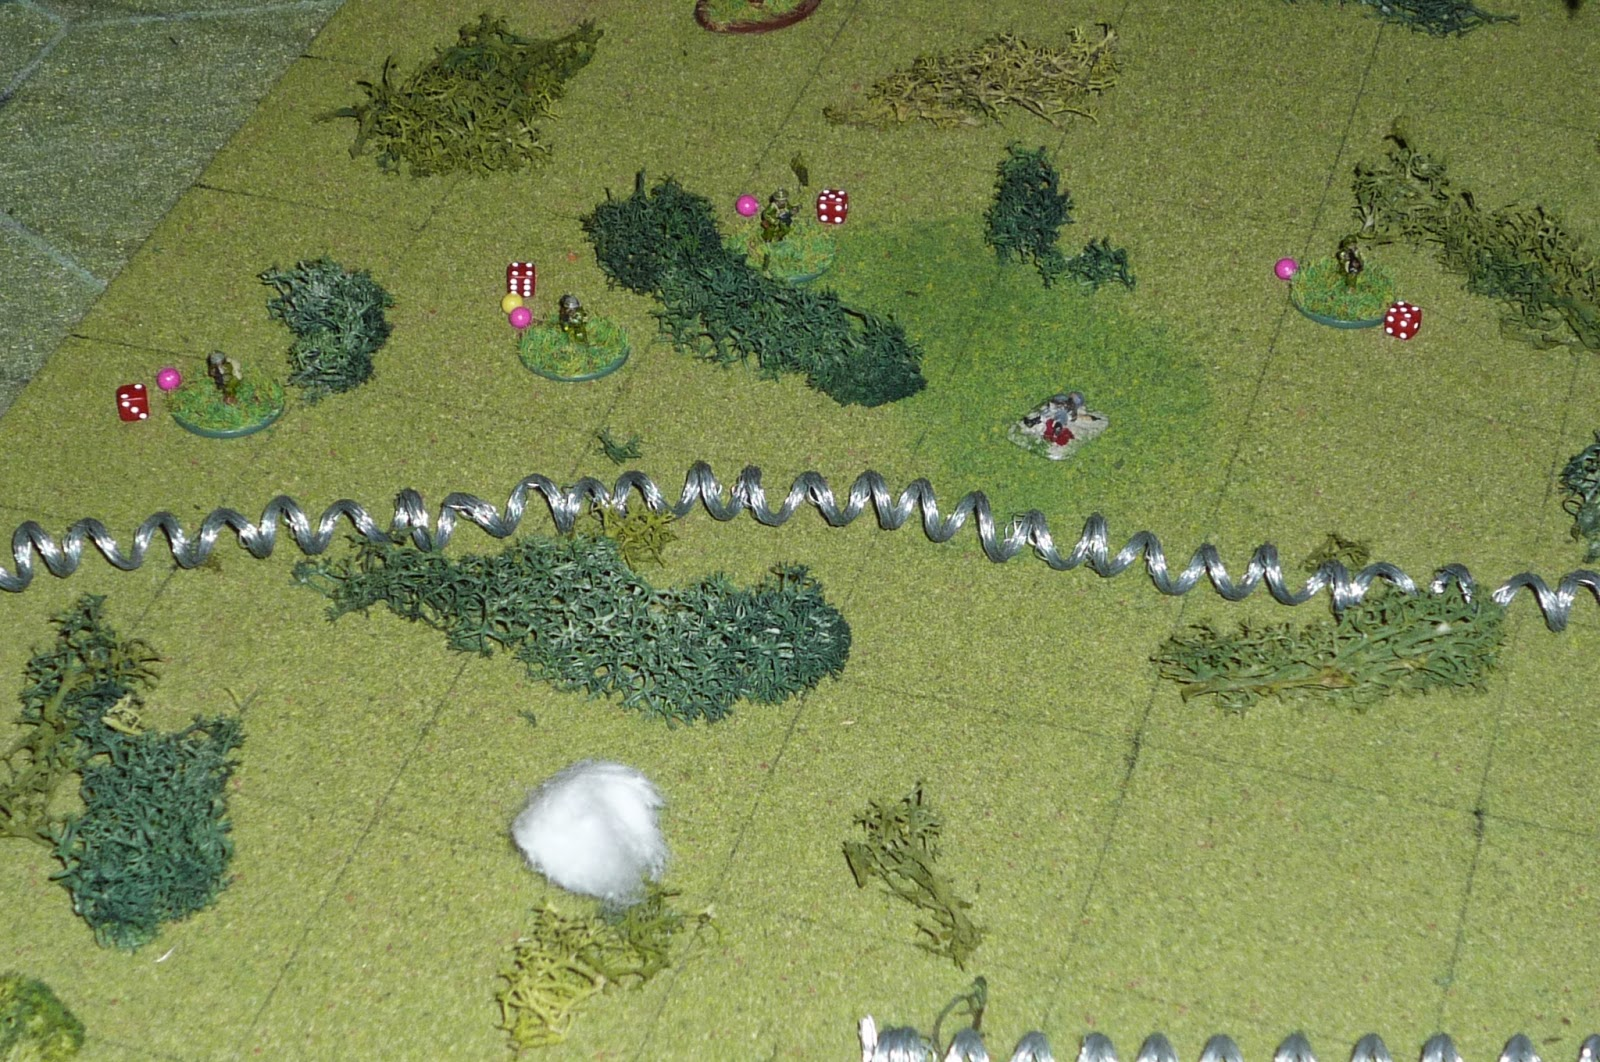 on the left claymore blows cotton puff putting one nva down lightly wounding one and putting stress on the other three